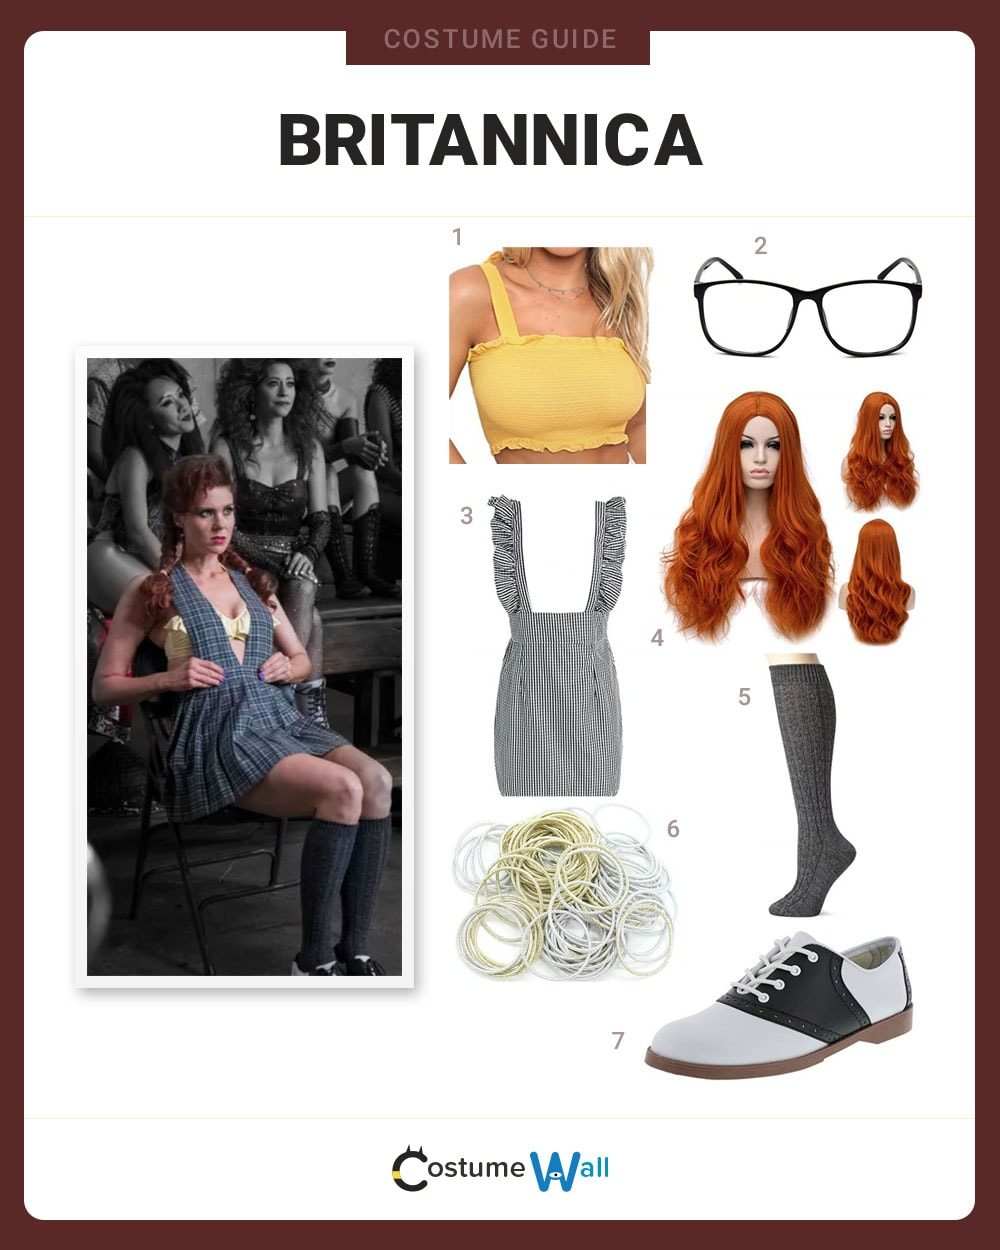 Britannica Costume Guide